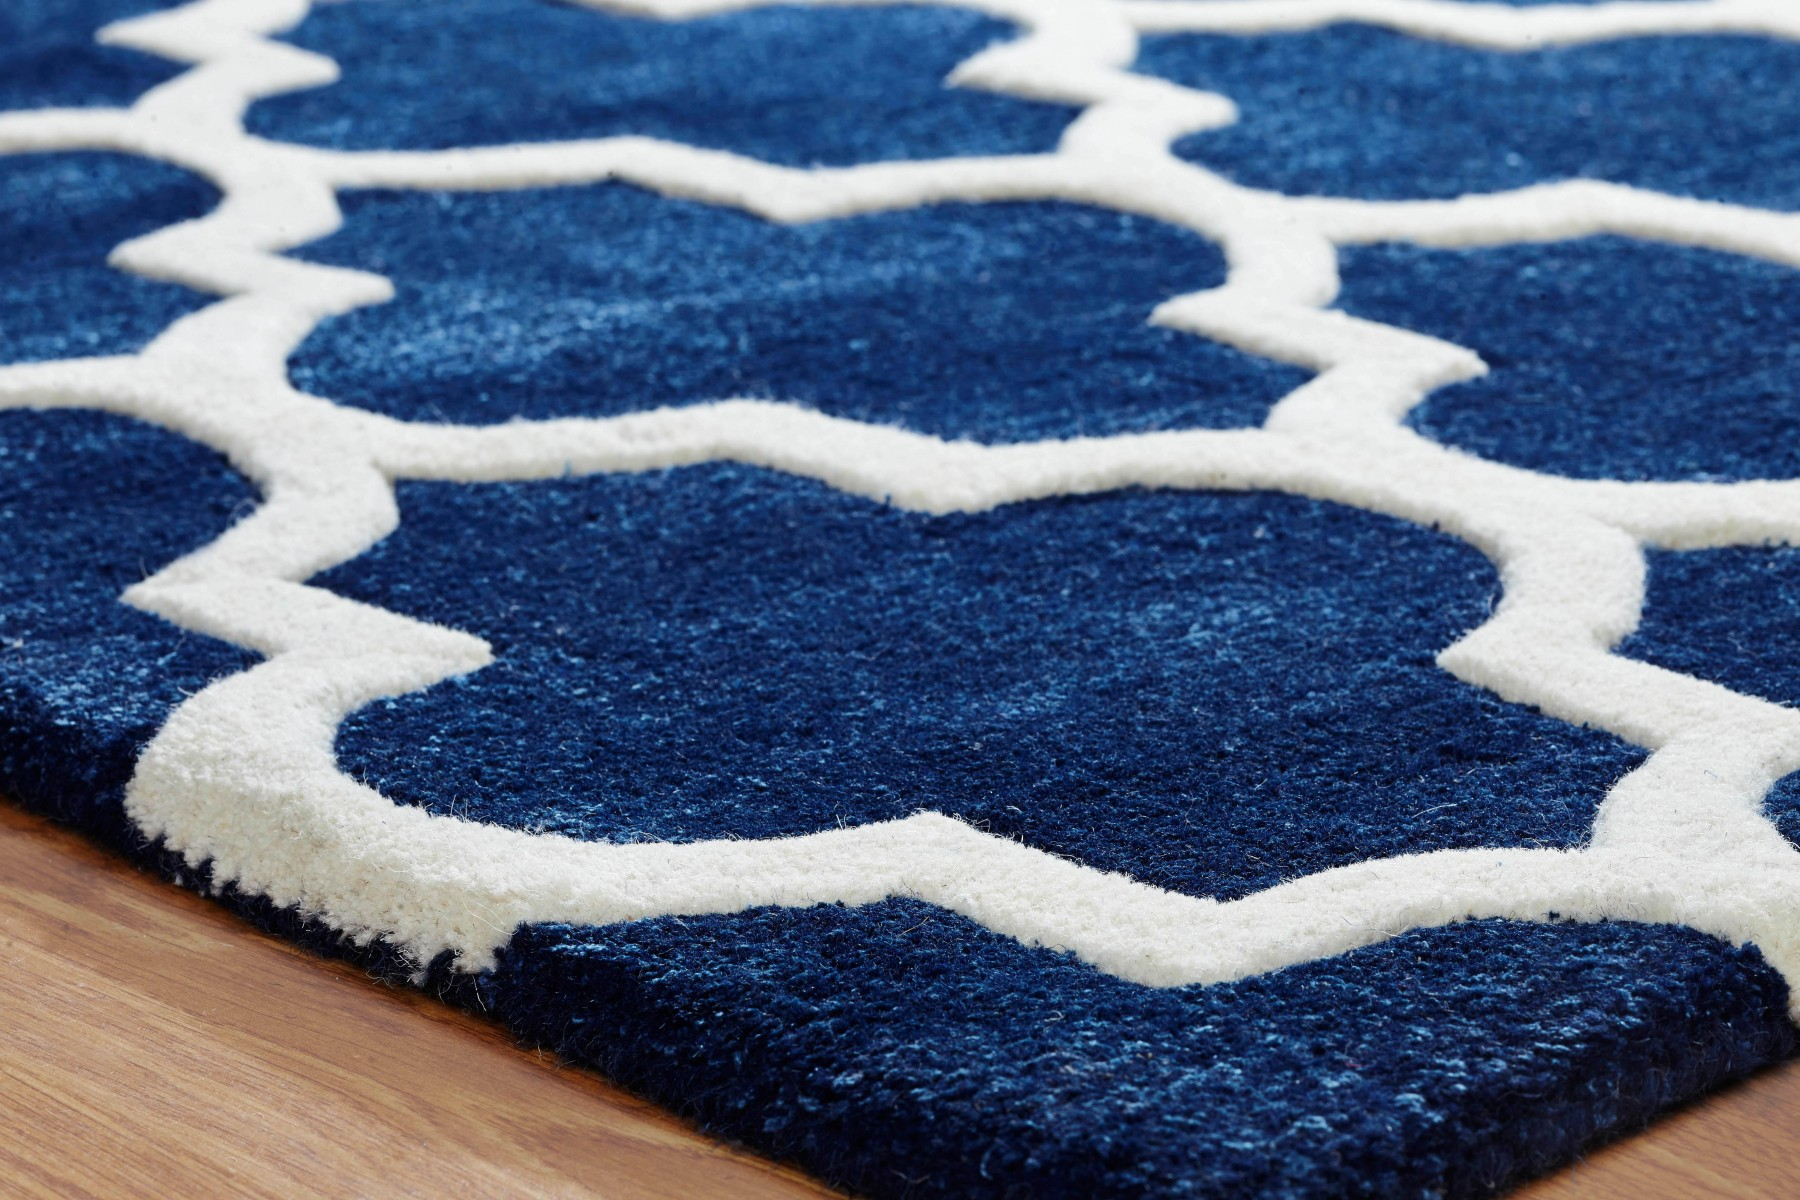 oriental weavers arabesque blue rug  best prices and free delivery at buyarug co uk buyarug co uk